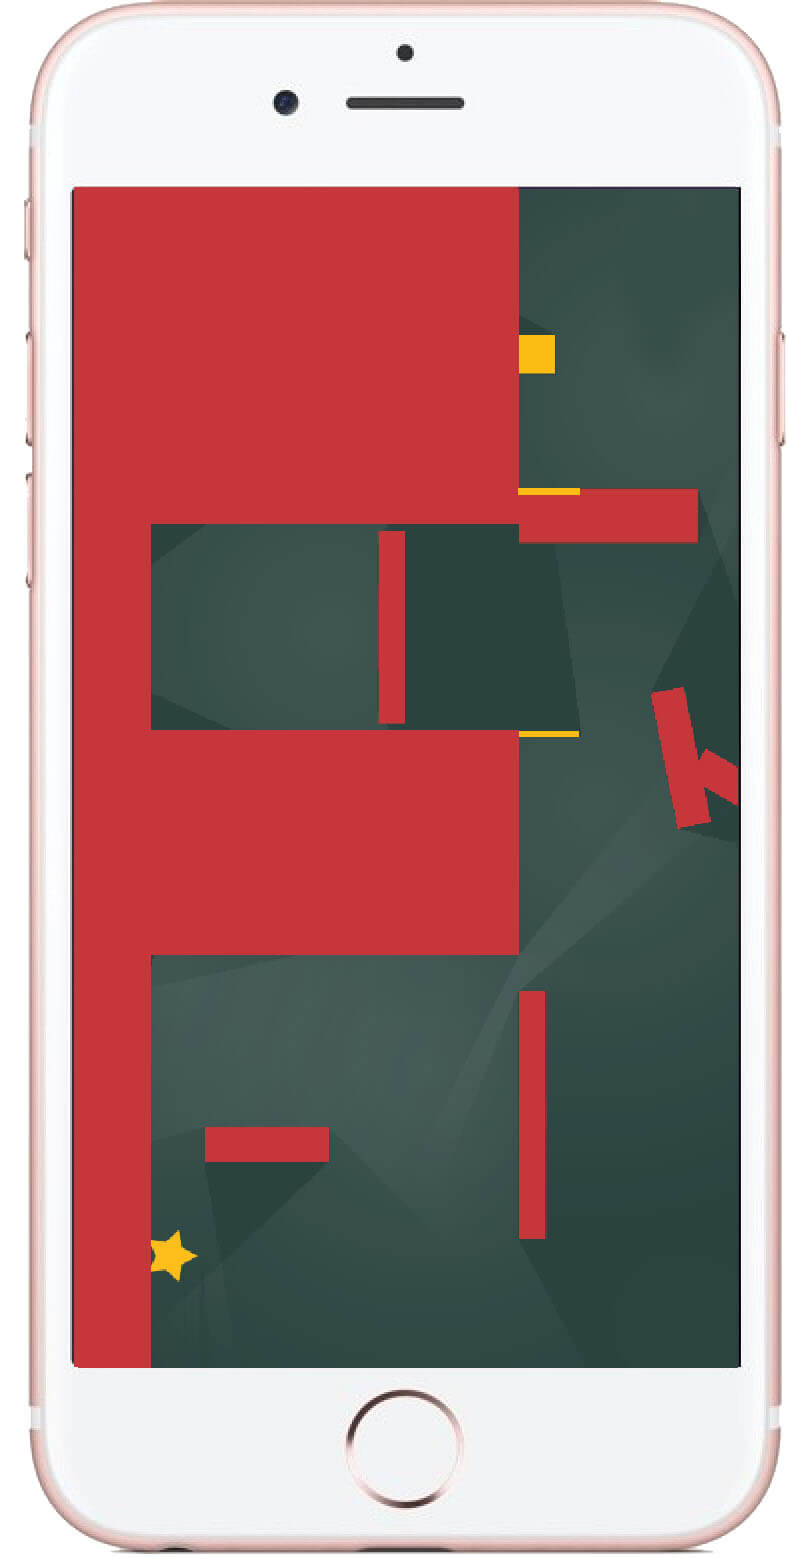 Risky room game for iOS  android